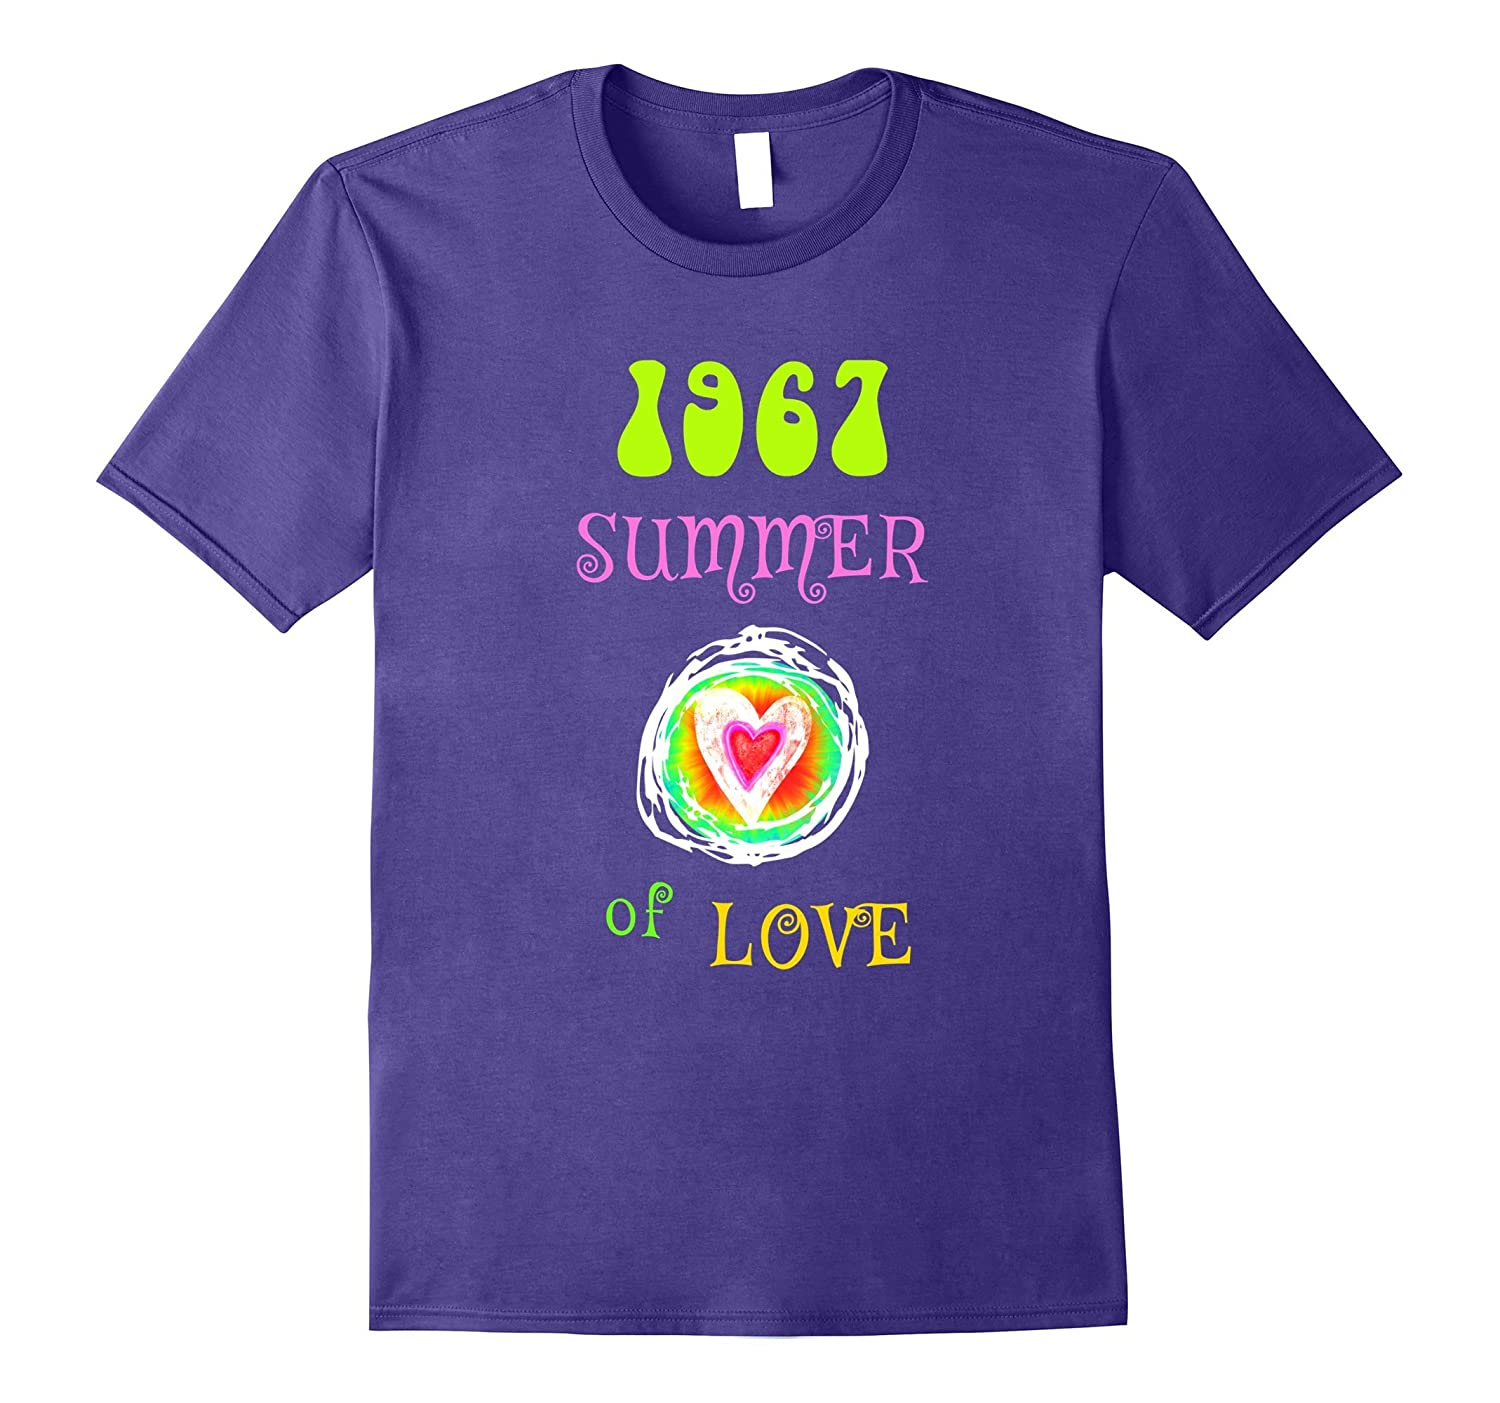 1967 Summer of Love Hippie Heart T-shirt-TH